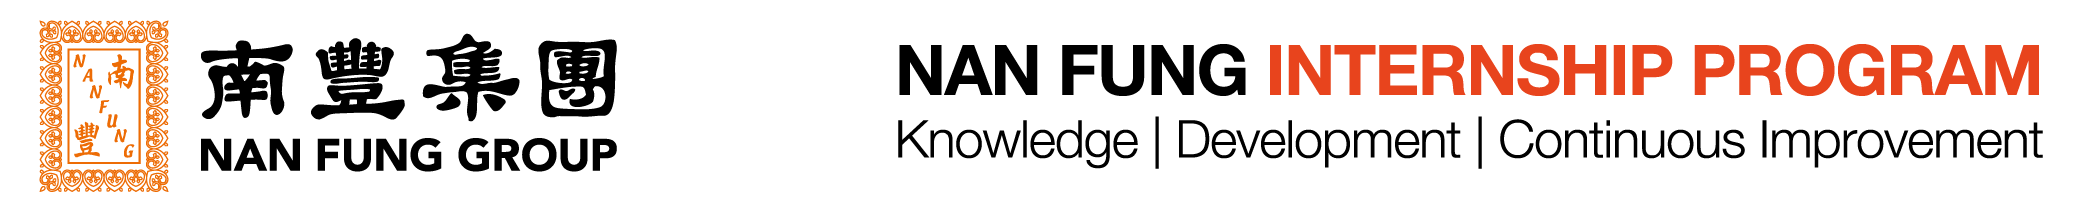 Nan Fung Internship Program